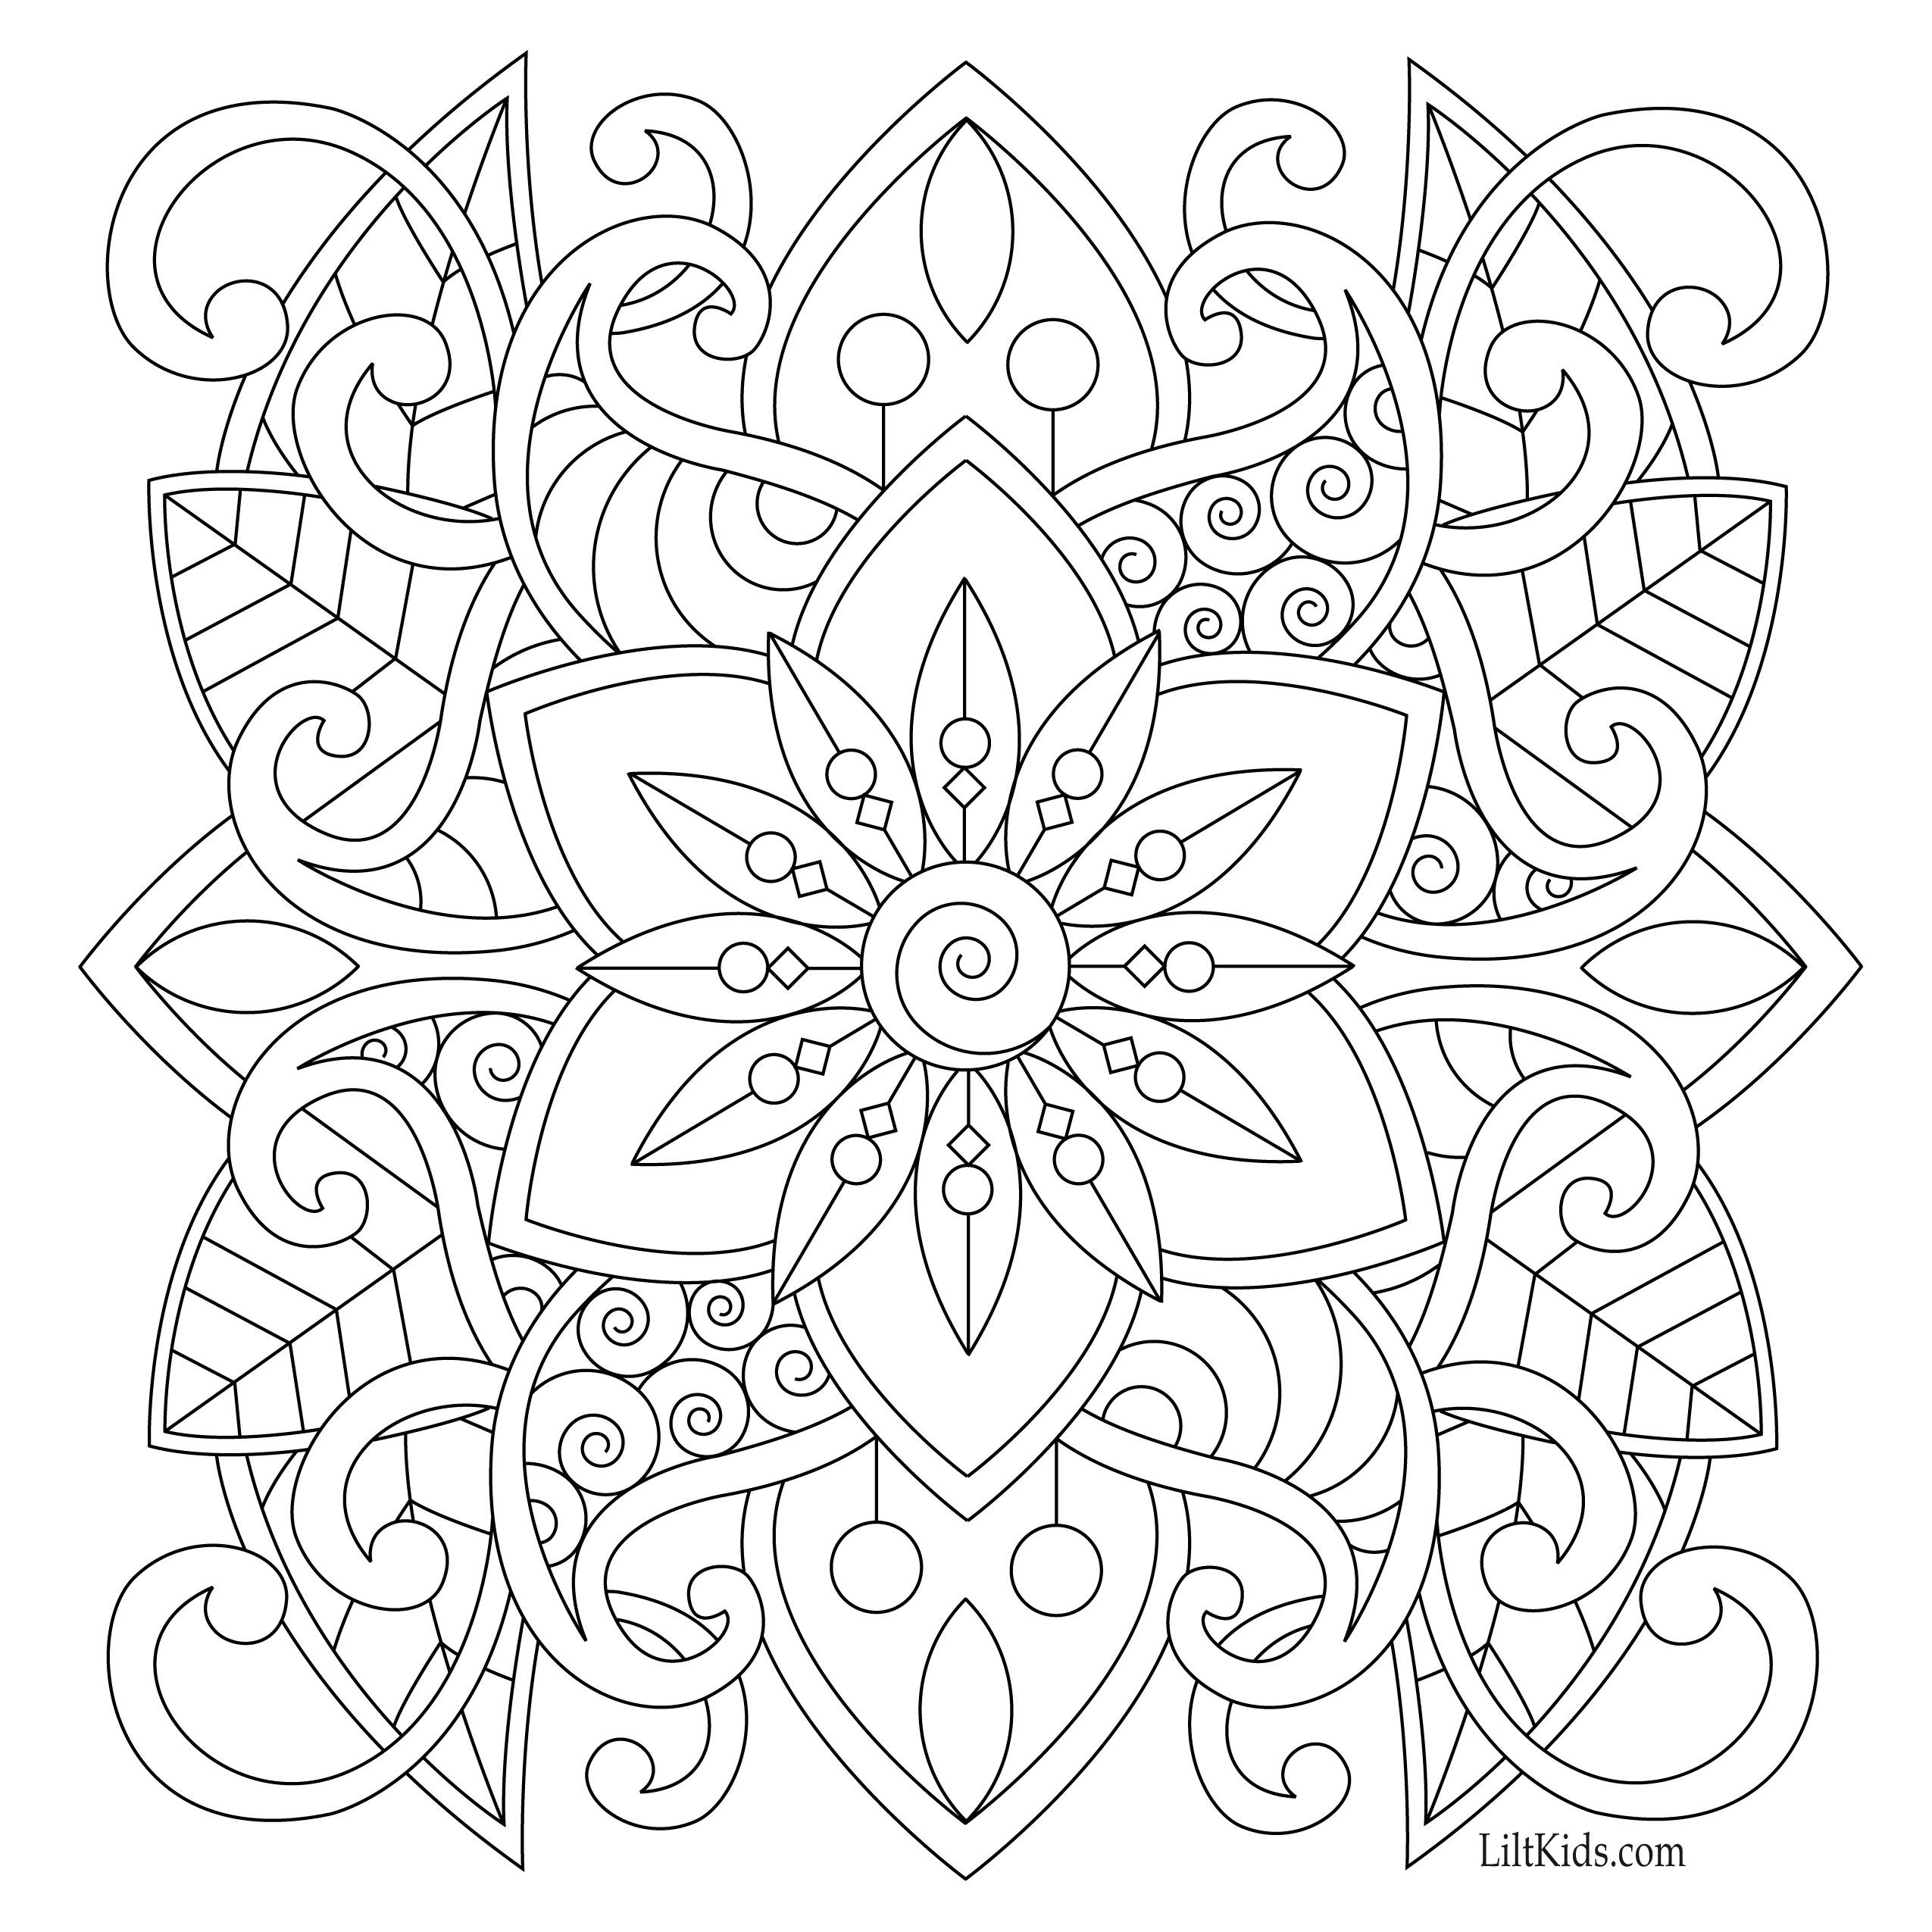 Free easy mandala for beginners adult coloring book image ...